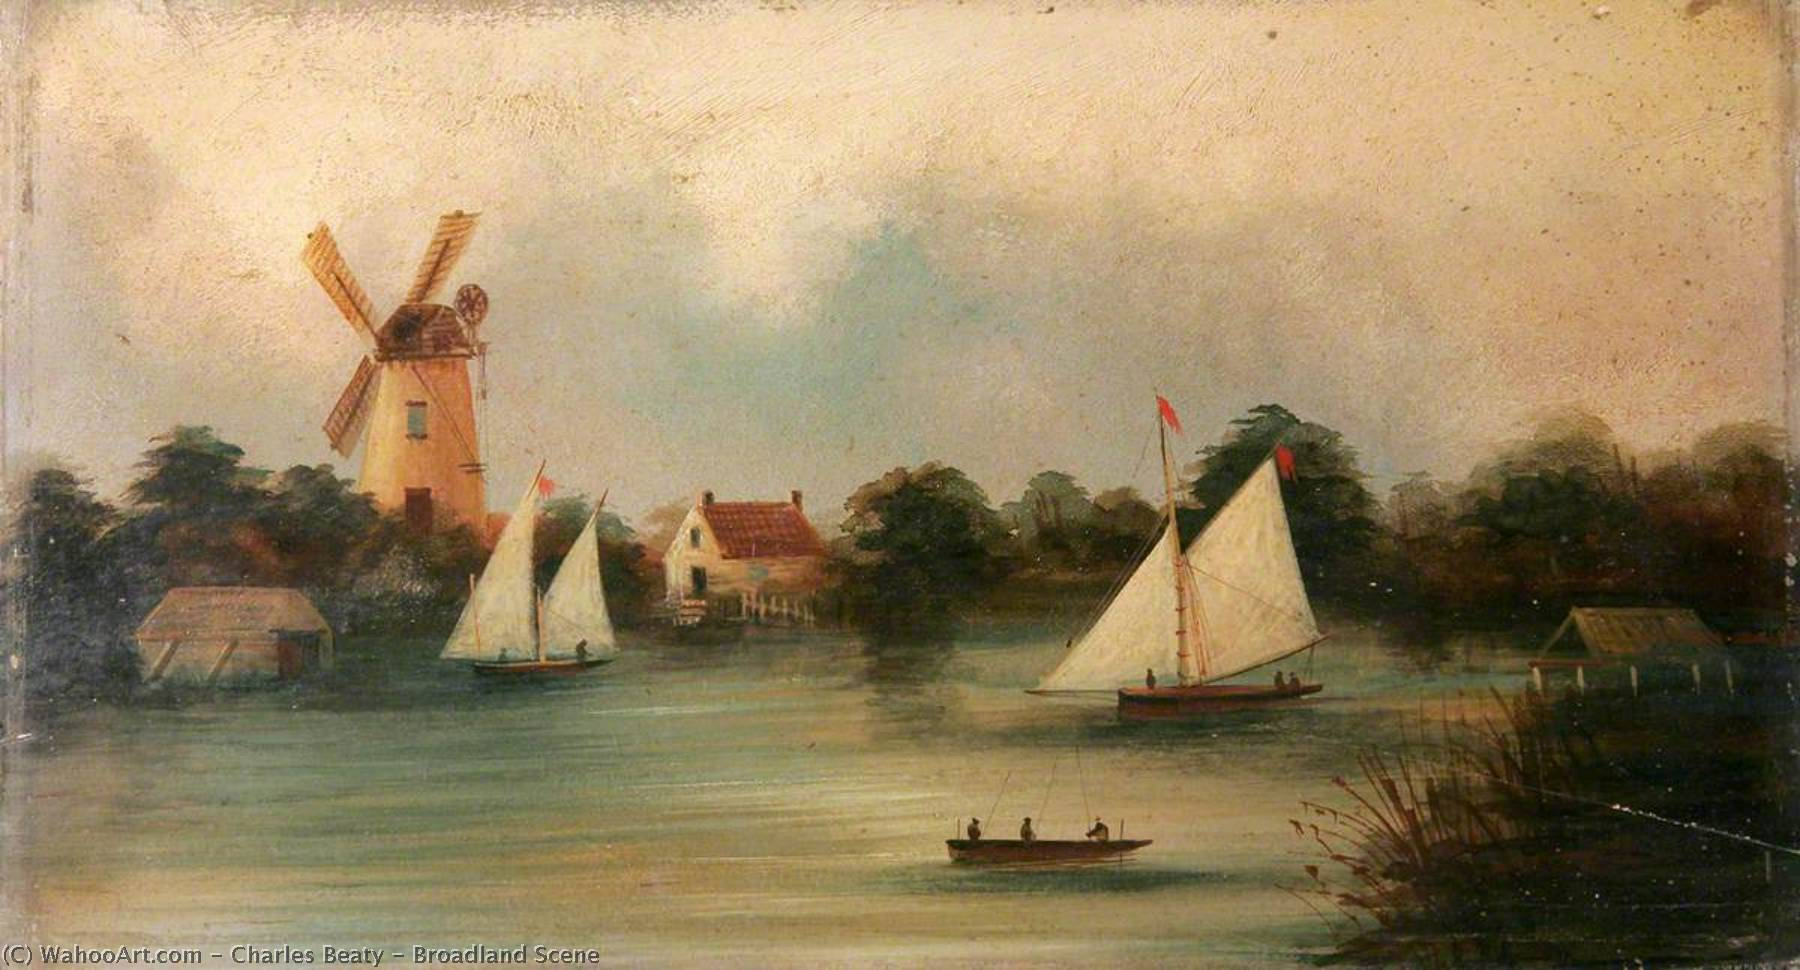 Broadland Scene, 1887 by Charles Beaty | Art Reproductions Charles Beaty | ArtsDot.com